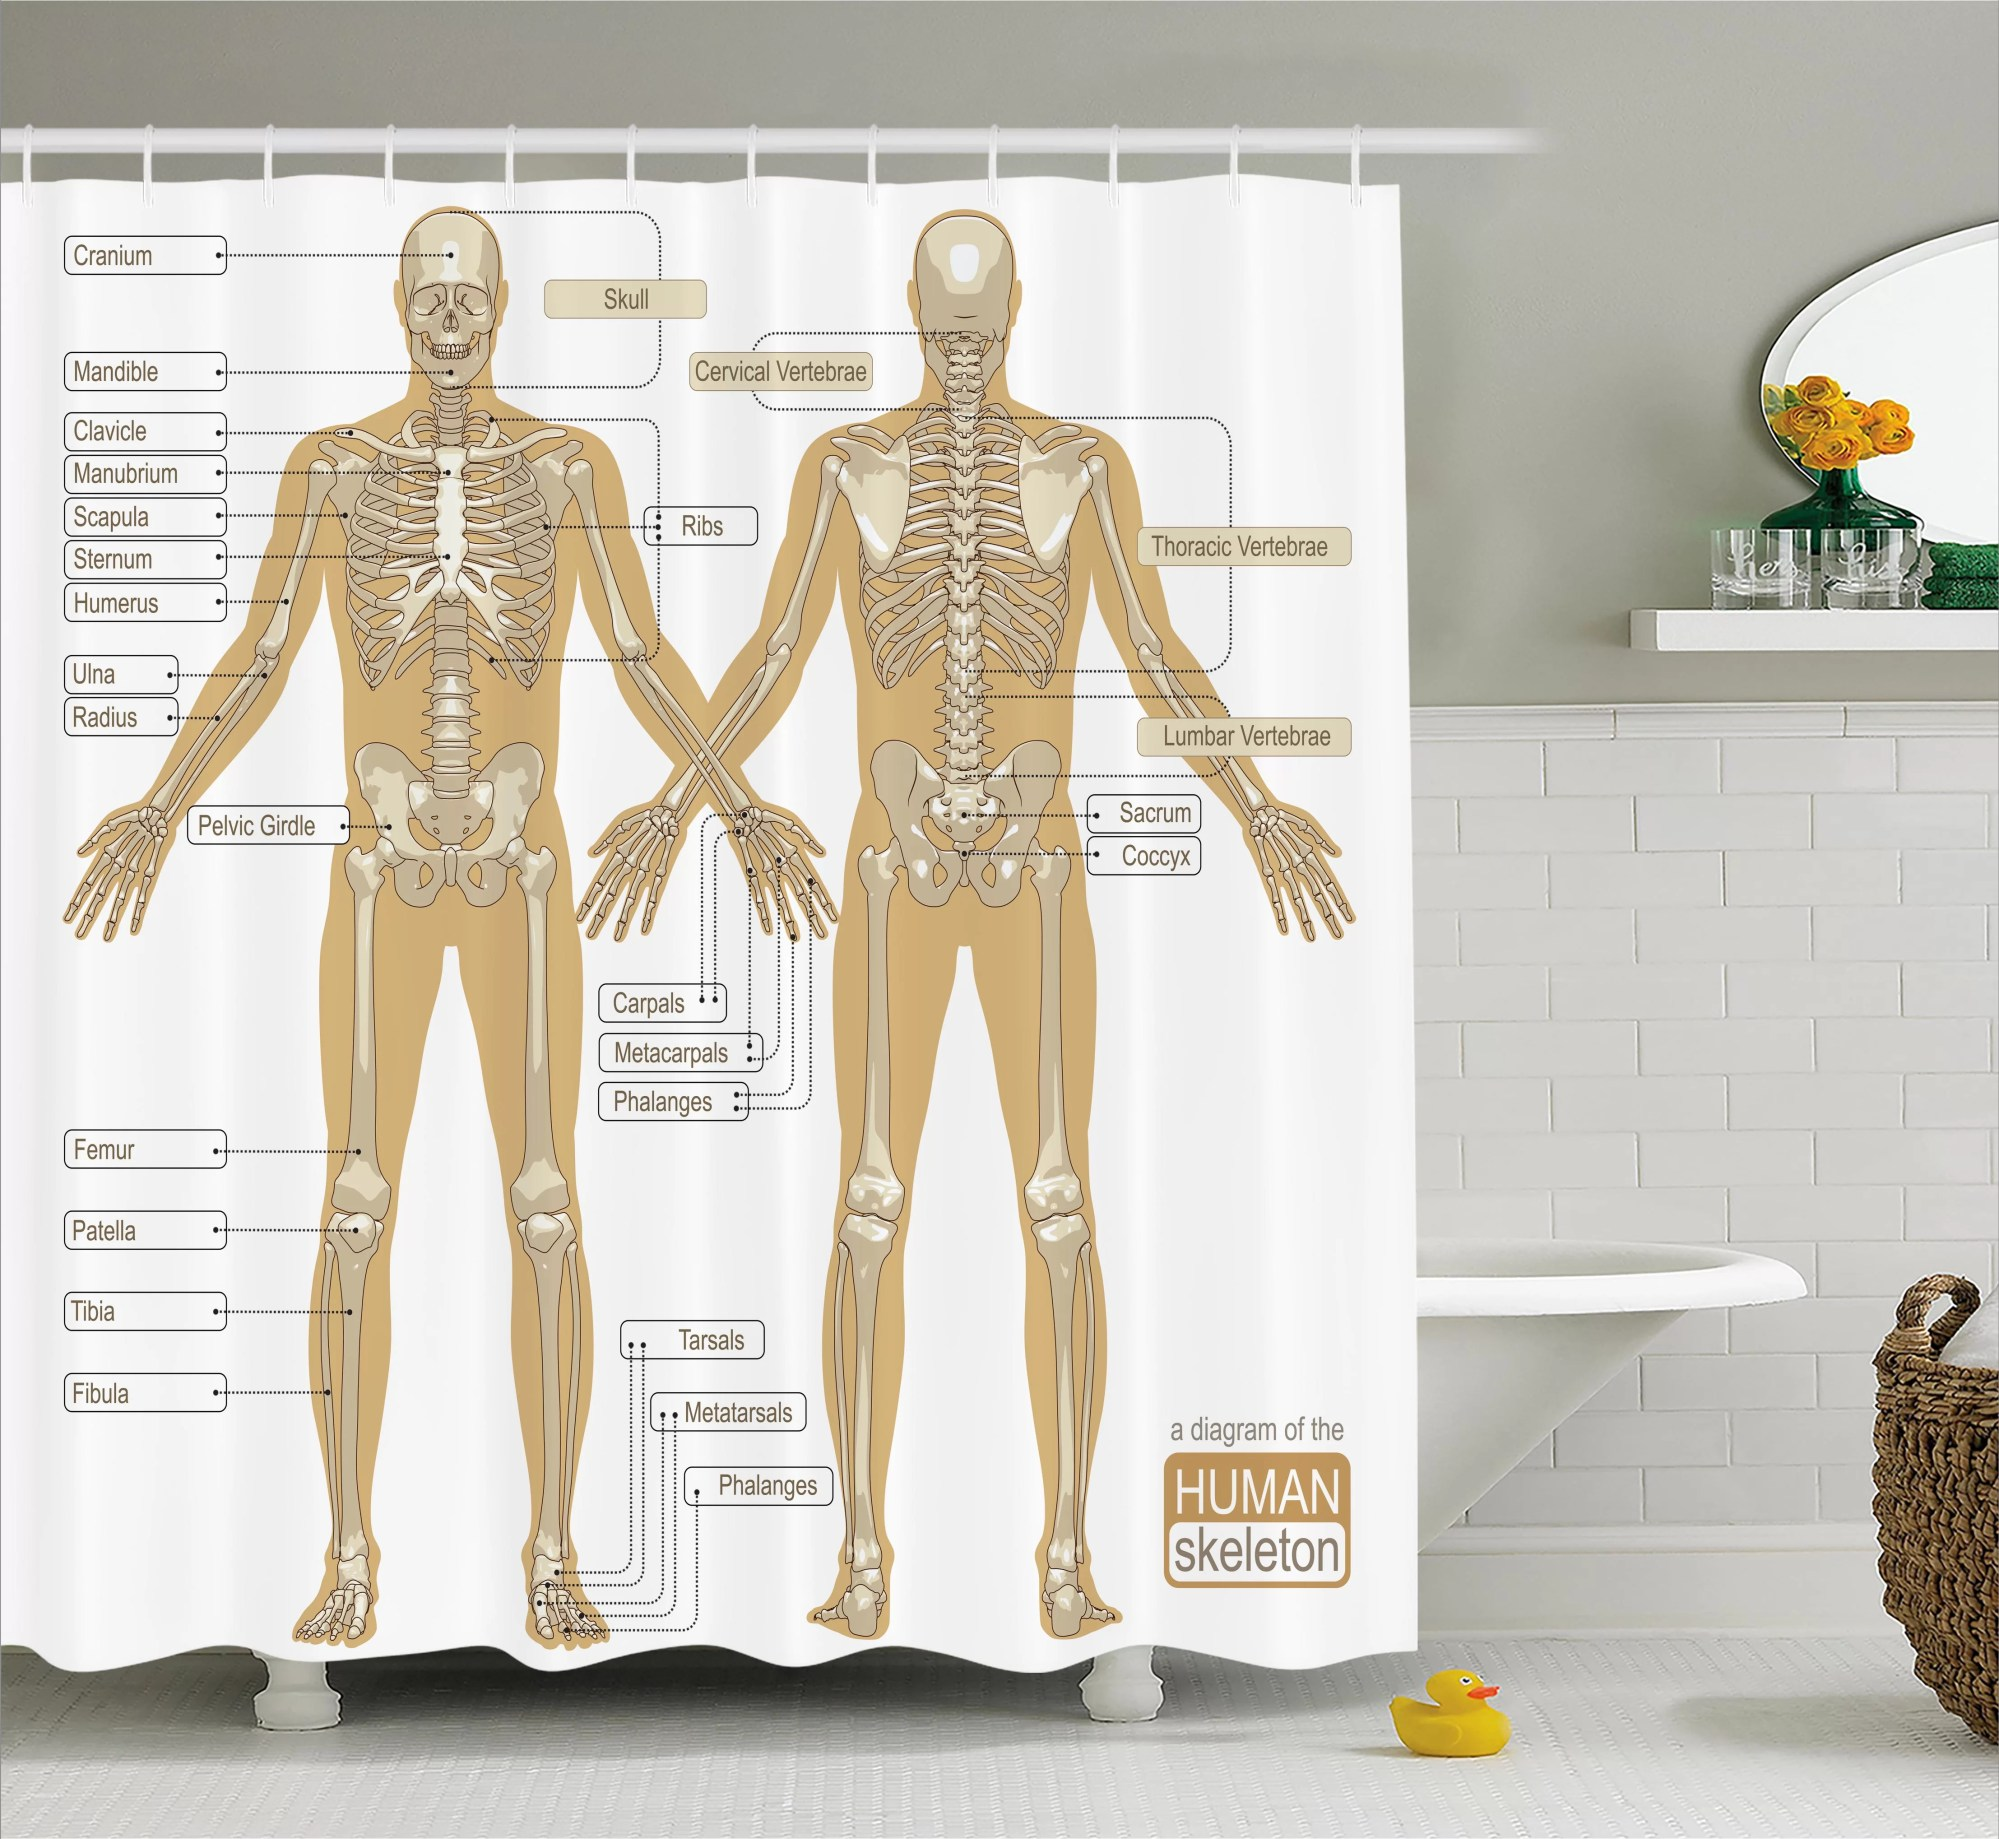 hight resolution of ambesonne human anatomy diagram of human skeleton system with titled main parts of body joints picture single shower curtain wayfair ca